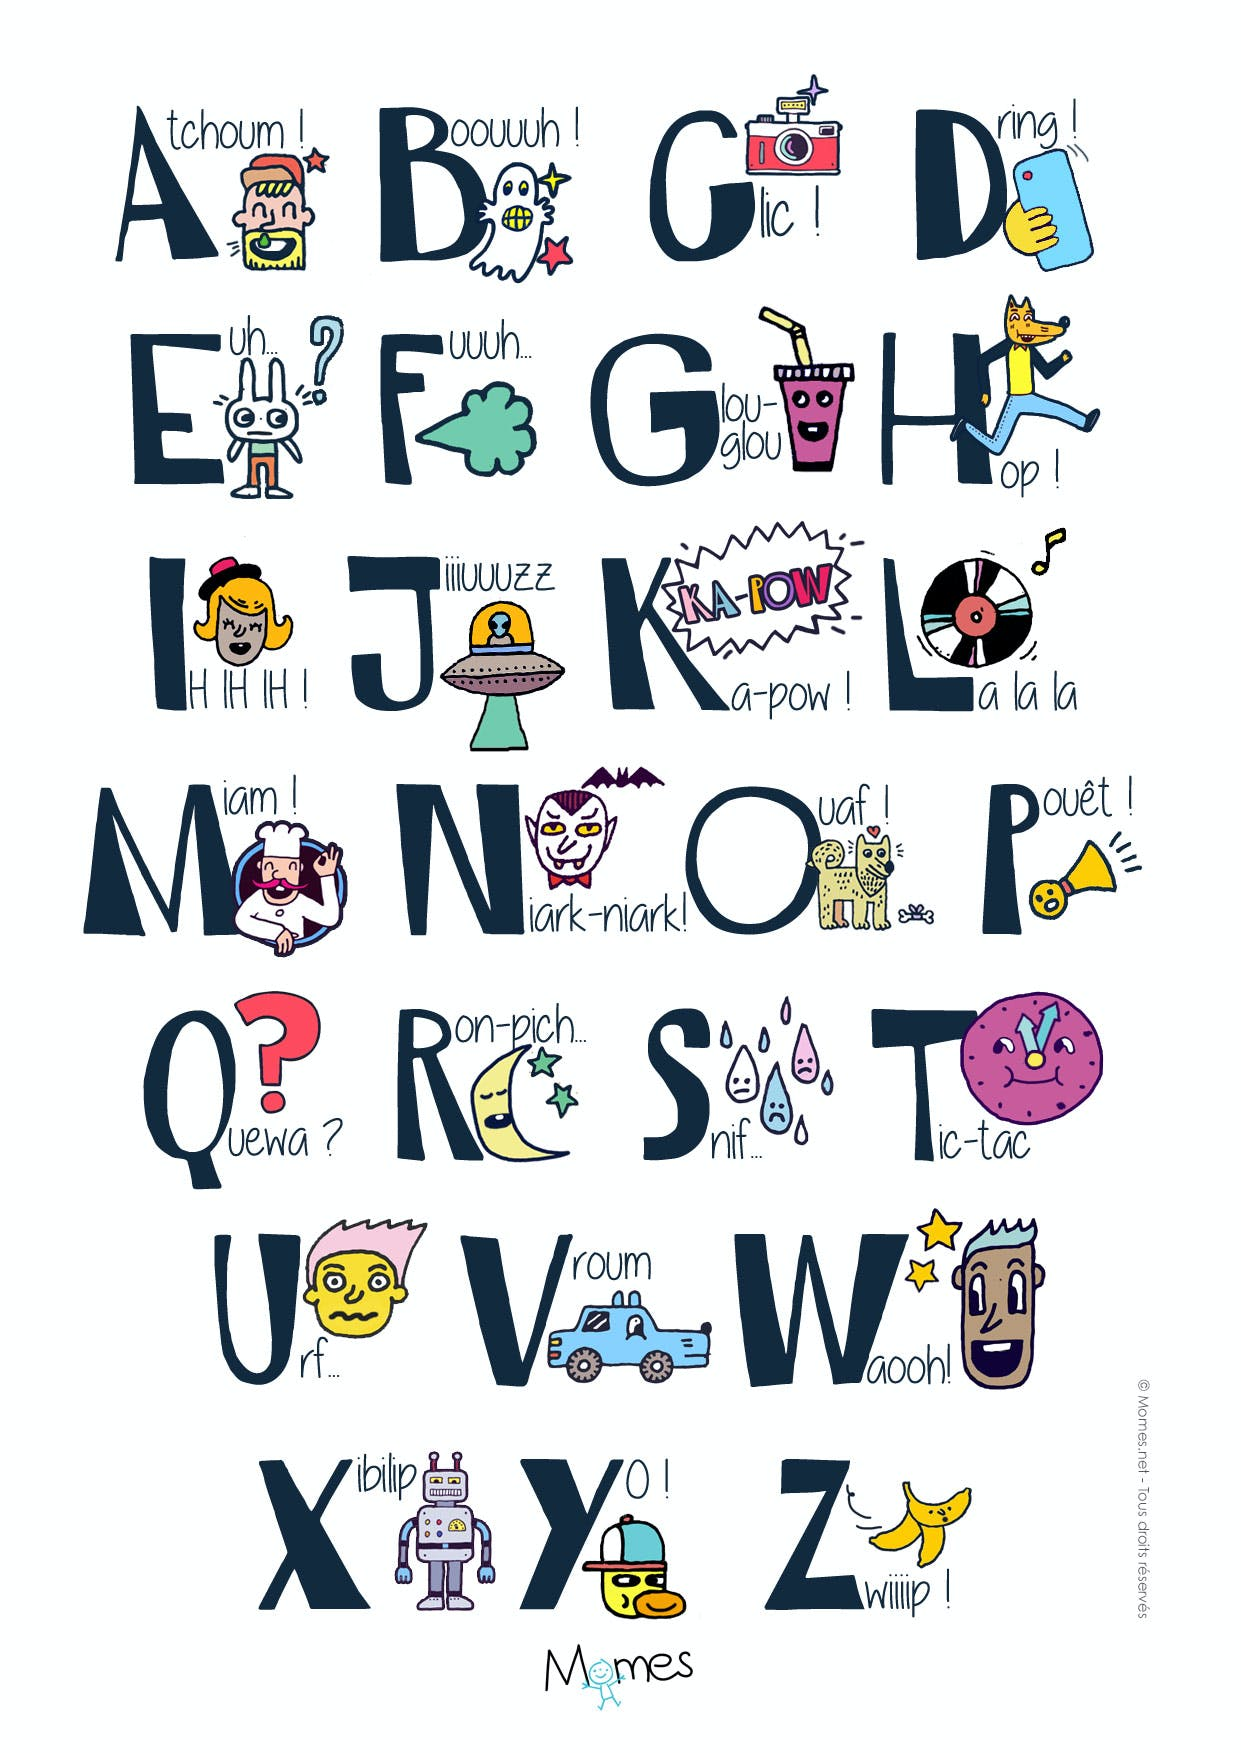 http://cdn1.momes.net/var/momes/storage/images/bricolages/bricolages-a-imprimer/posters-a-imprimer/poster-alphabet-des-onomatopees/1196335-1-fre-FR/Poster-Alphabet-des-onomatopees.jpg